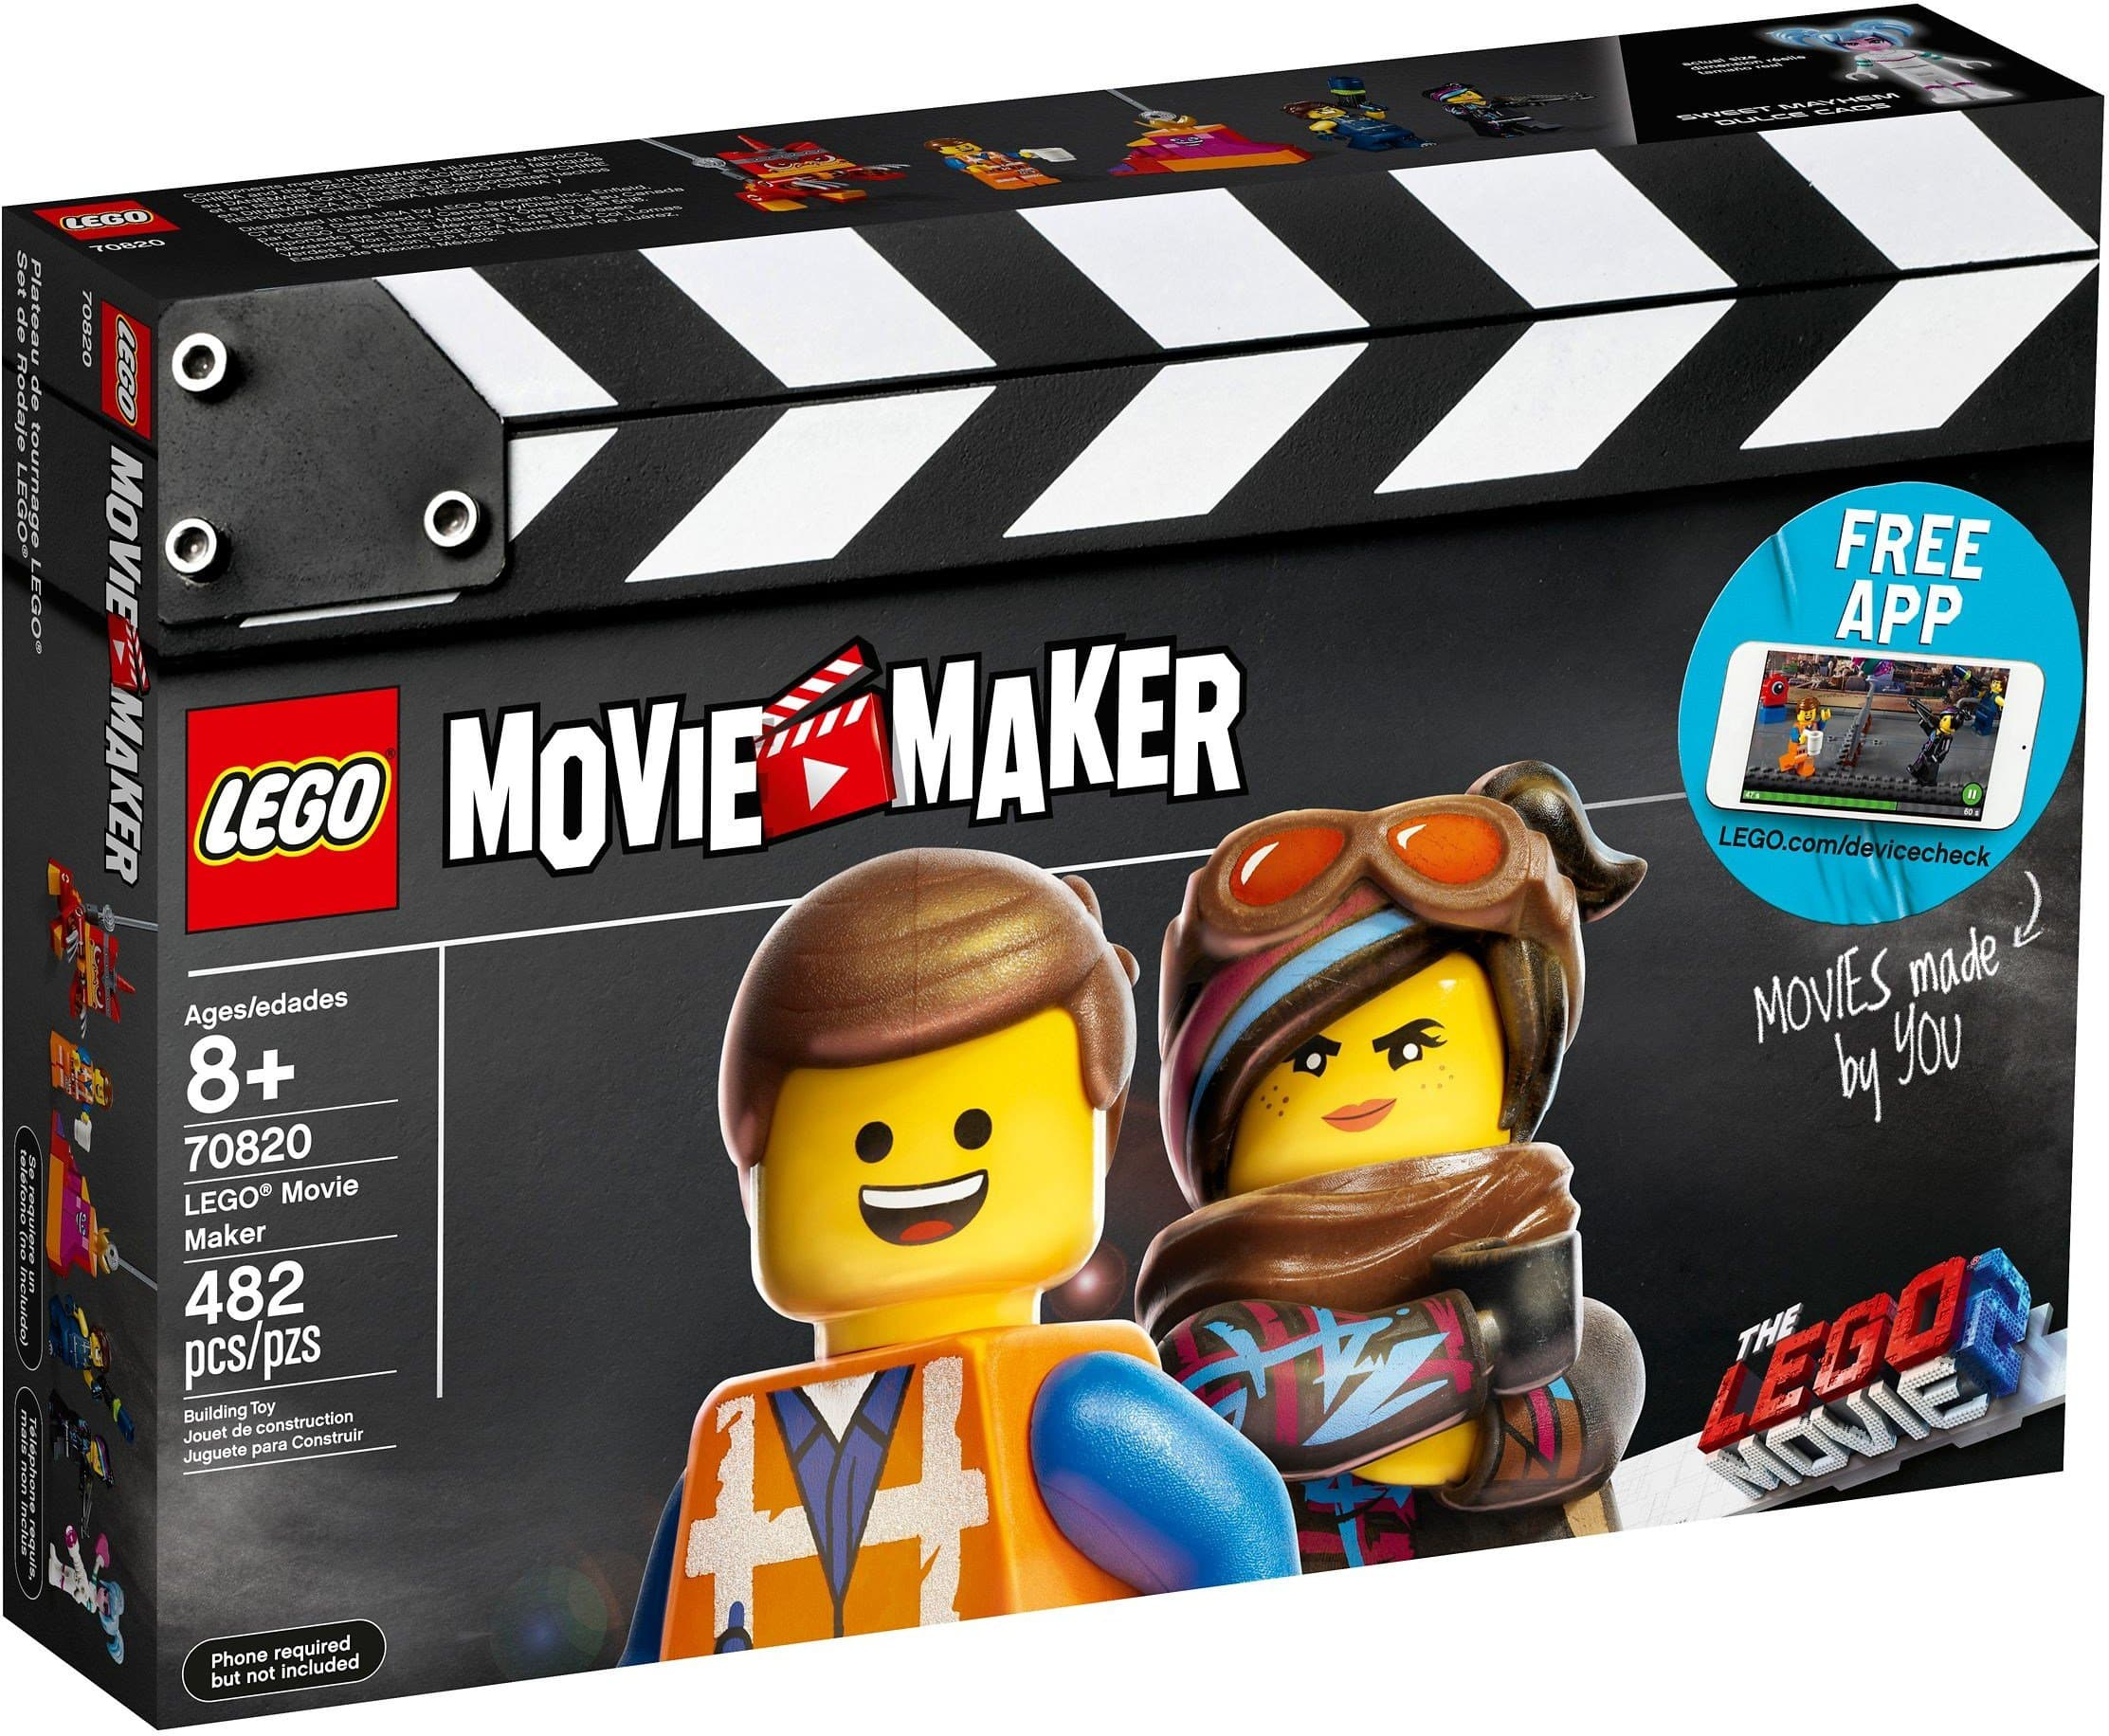 Lego 70820 - LEGO Movie Maker